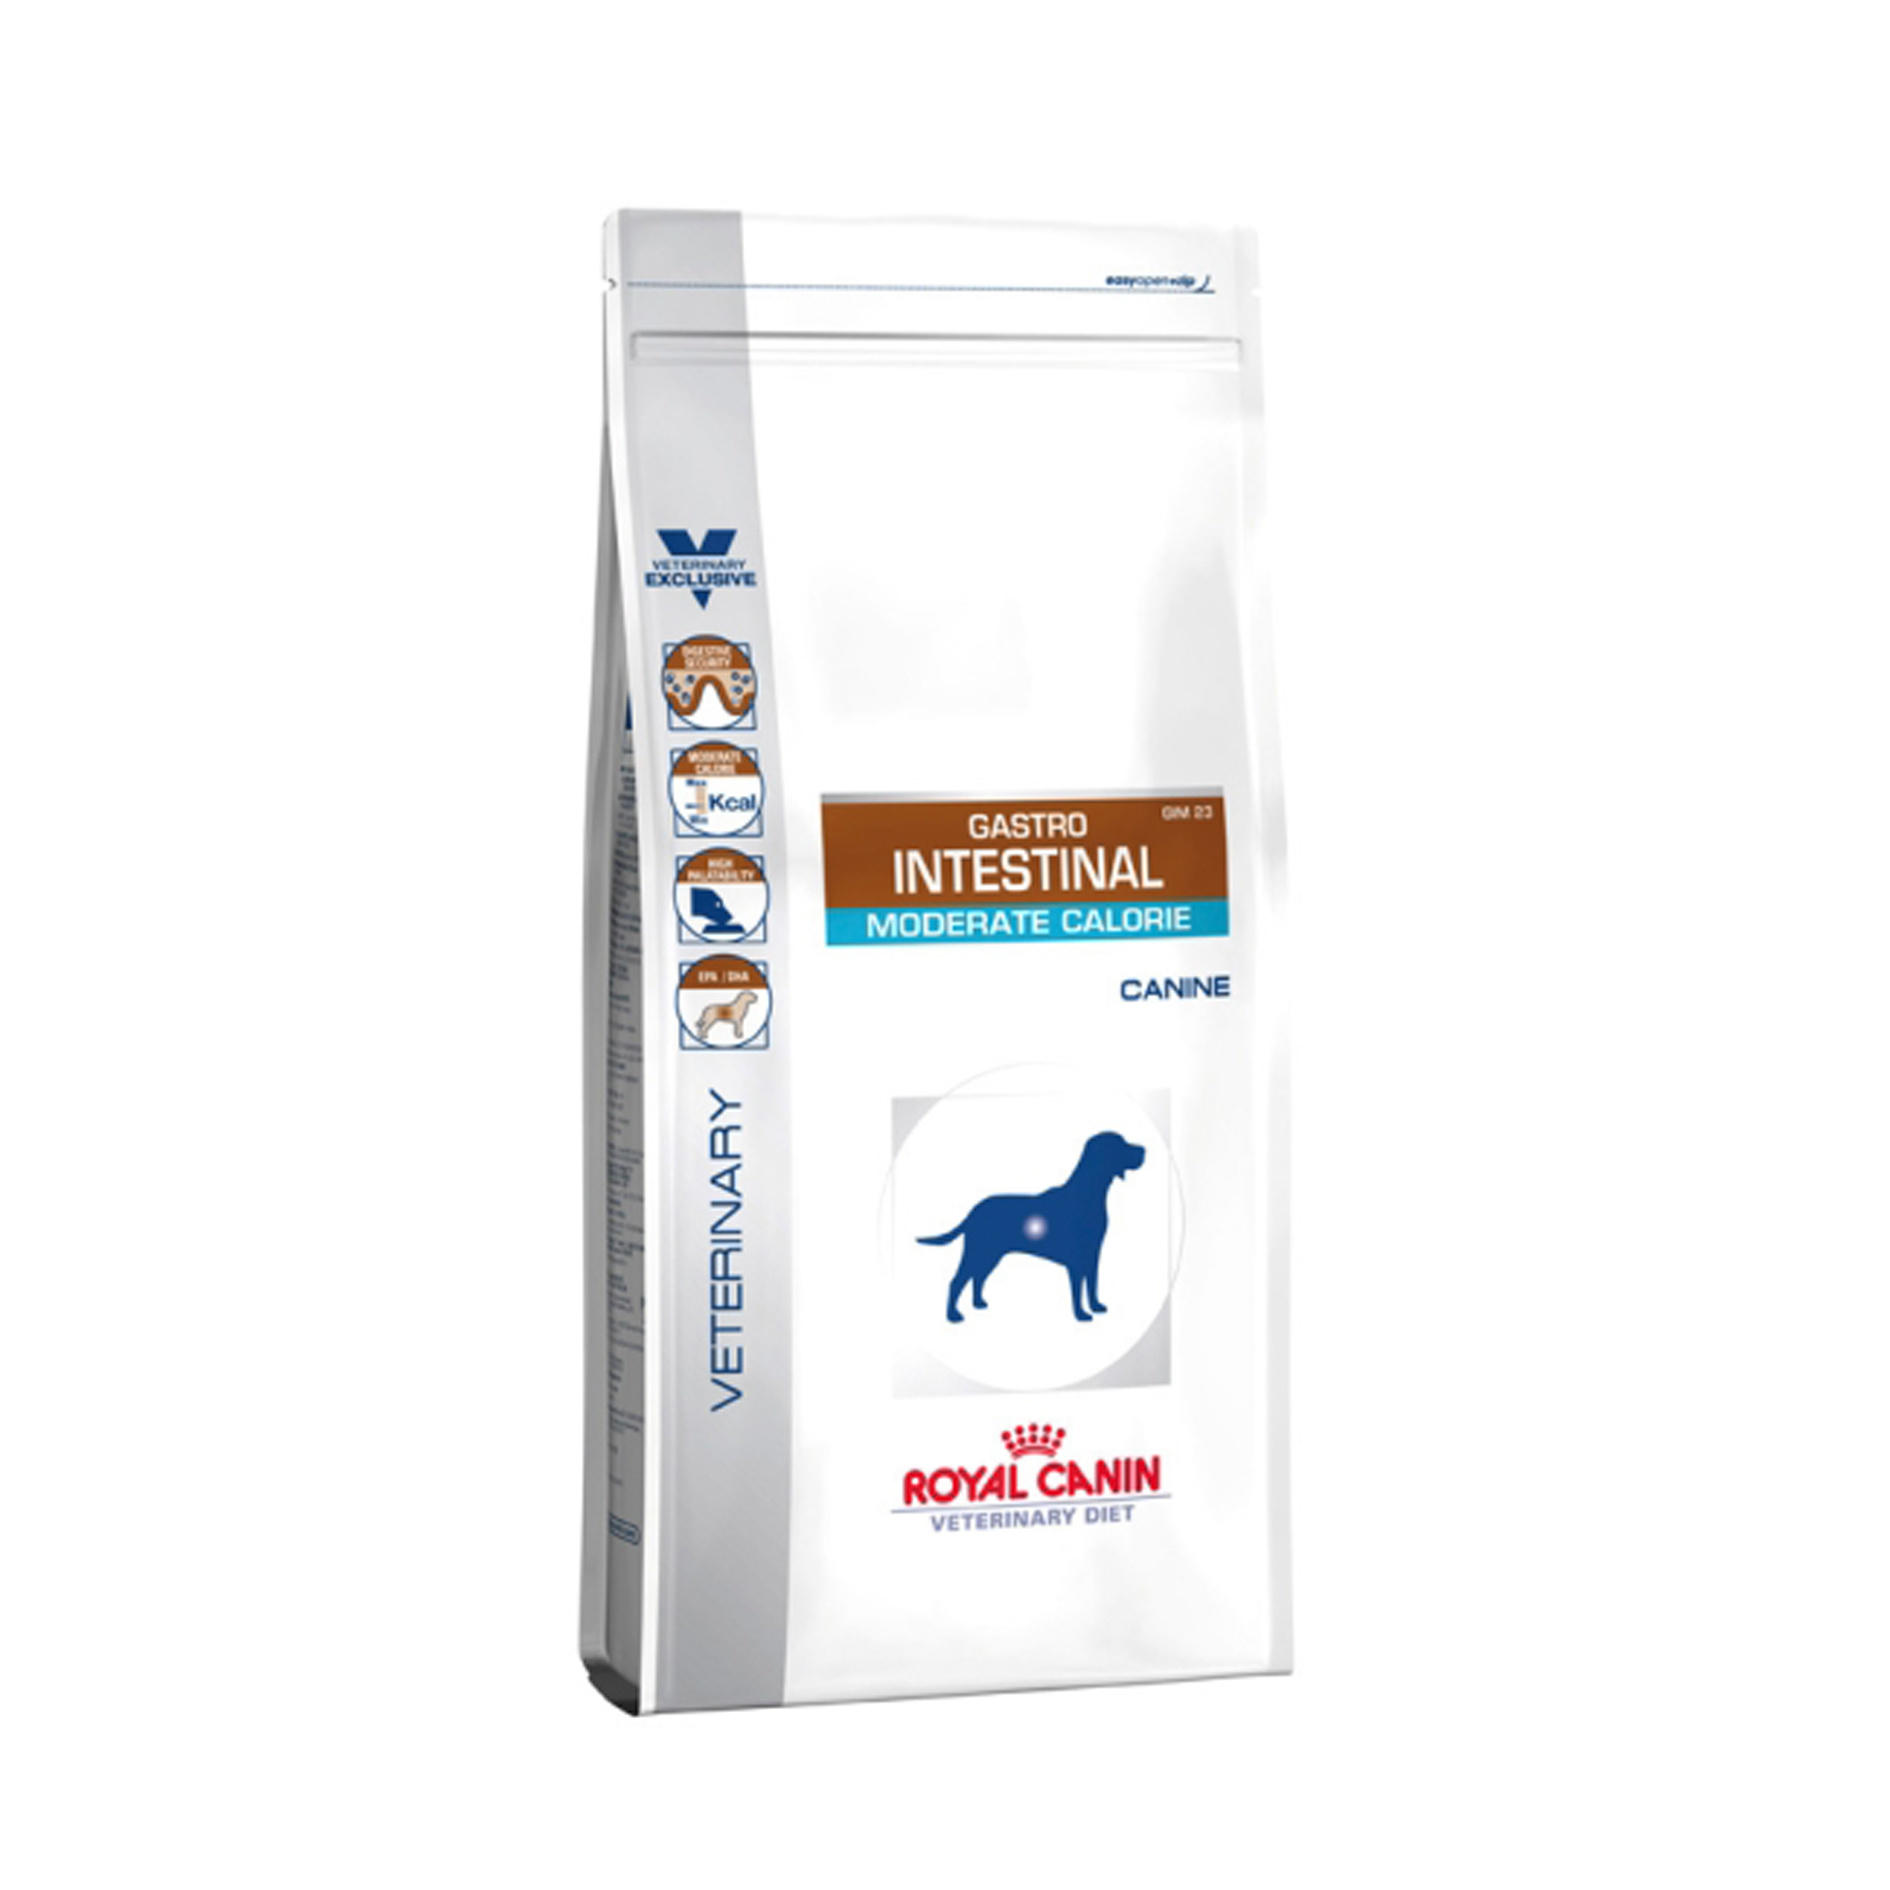 royal canin canine veterinary diet gastro intestinal. Black Bedroom Furniture Sets. Home Design Ideas